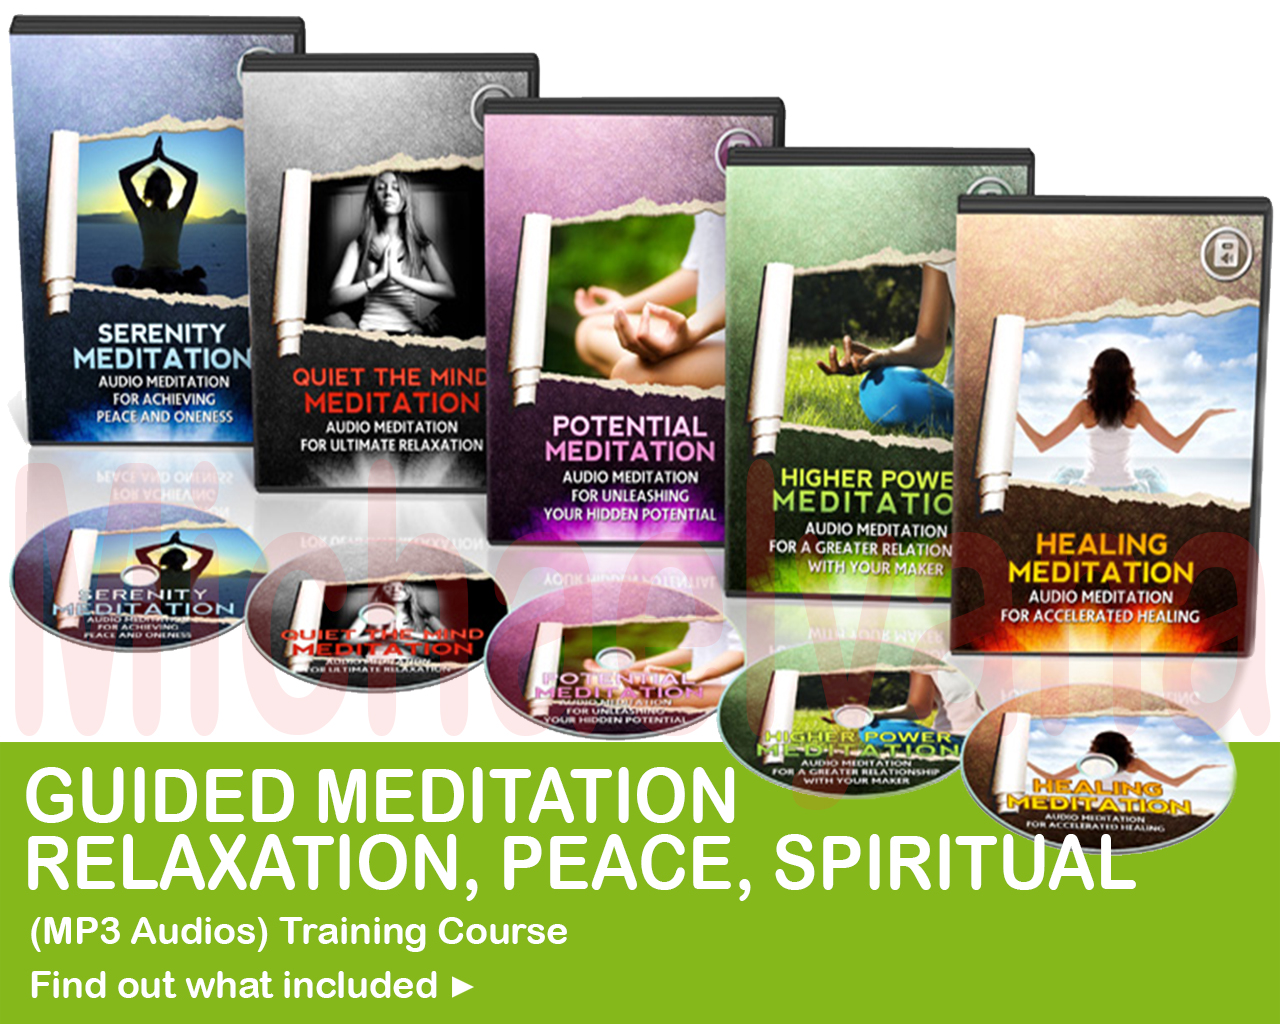 GUIDED MEDITATION - RELAXATION,  PEACE,  SPIRITUAL - MP3 AUDIOS TRAINING COURSE